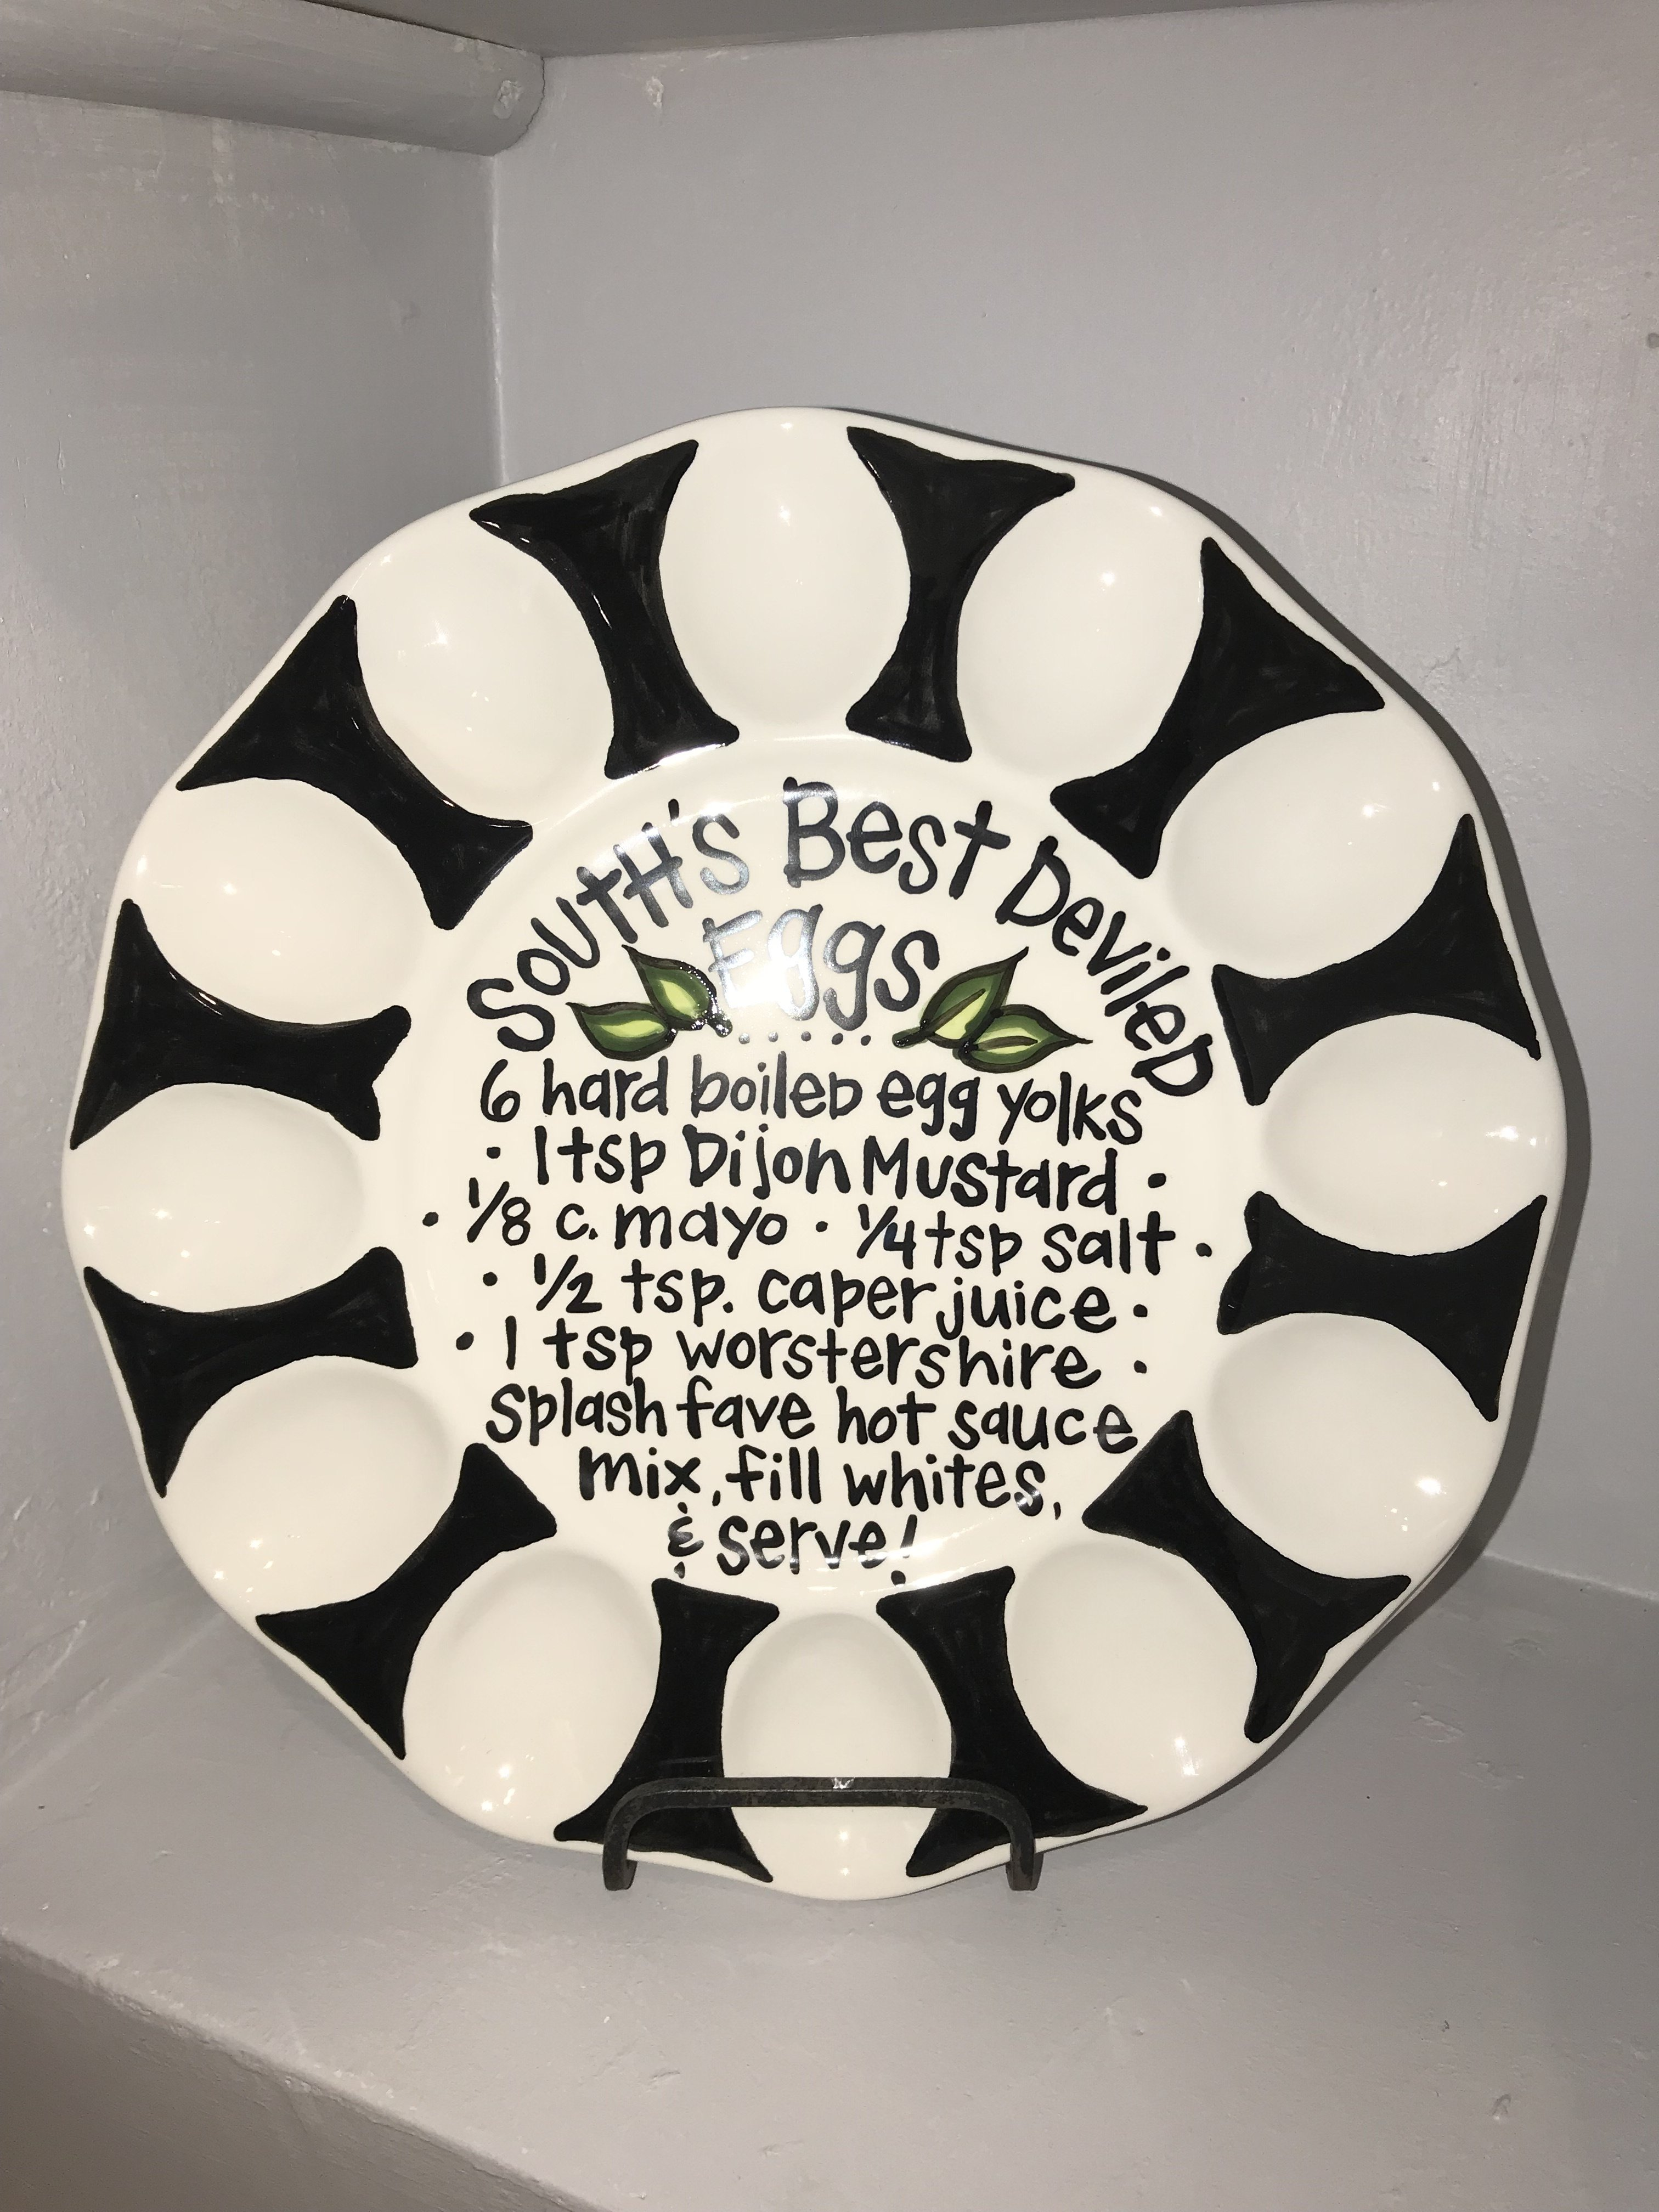 South Best Deviled Egg Plate 849046038536